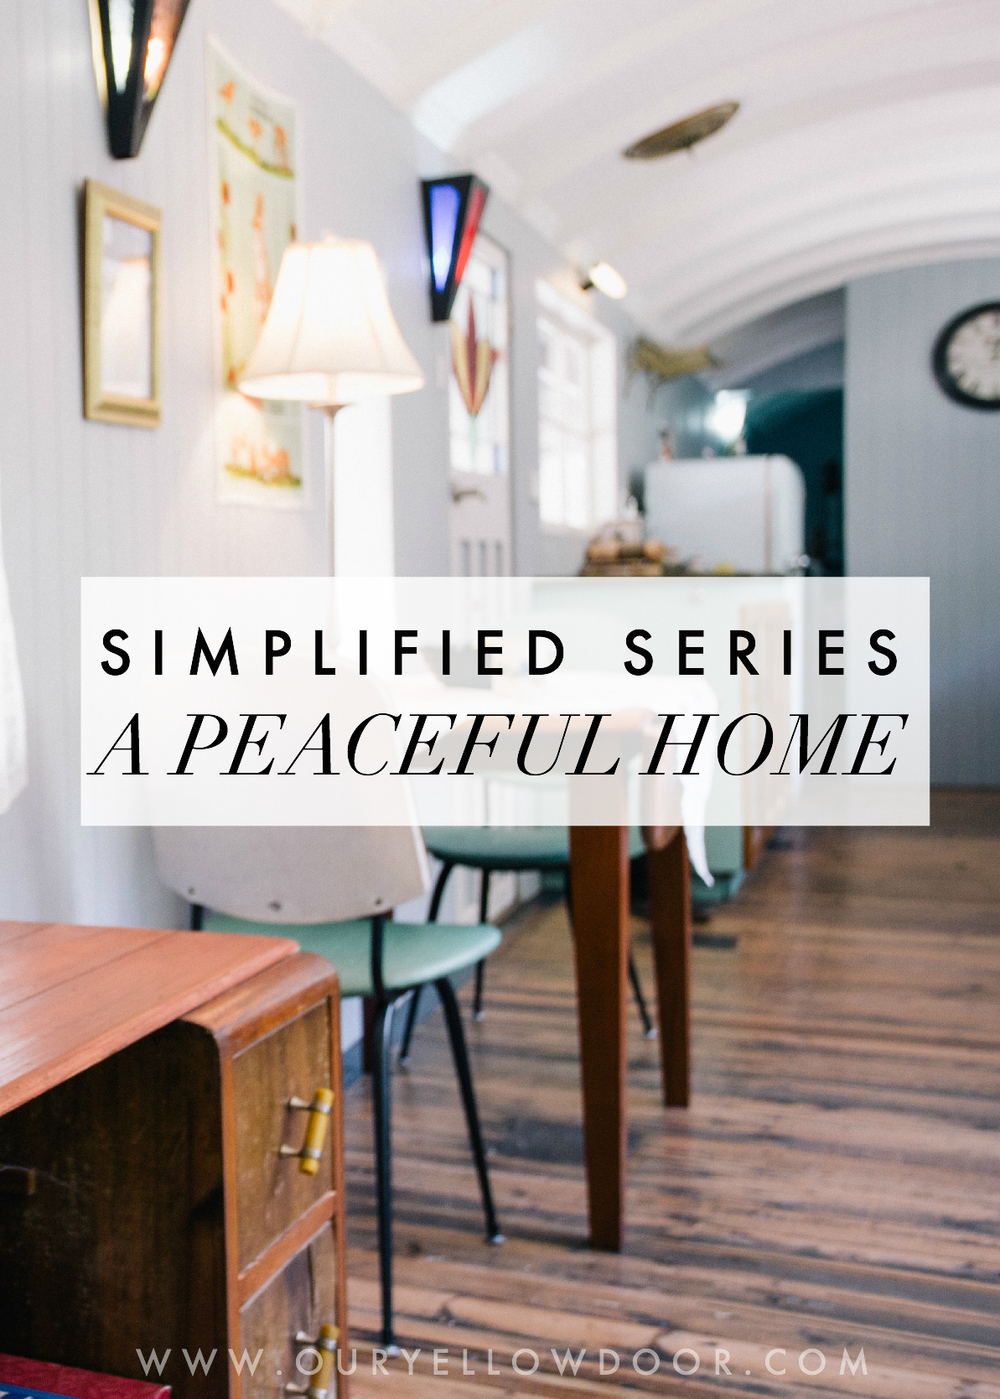 Simplified-Series-Peaceful-Home.jpg